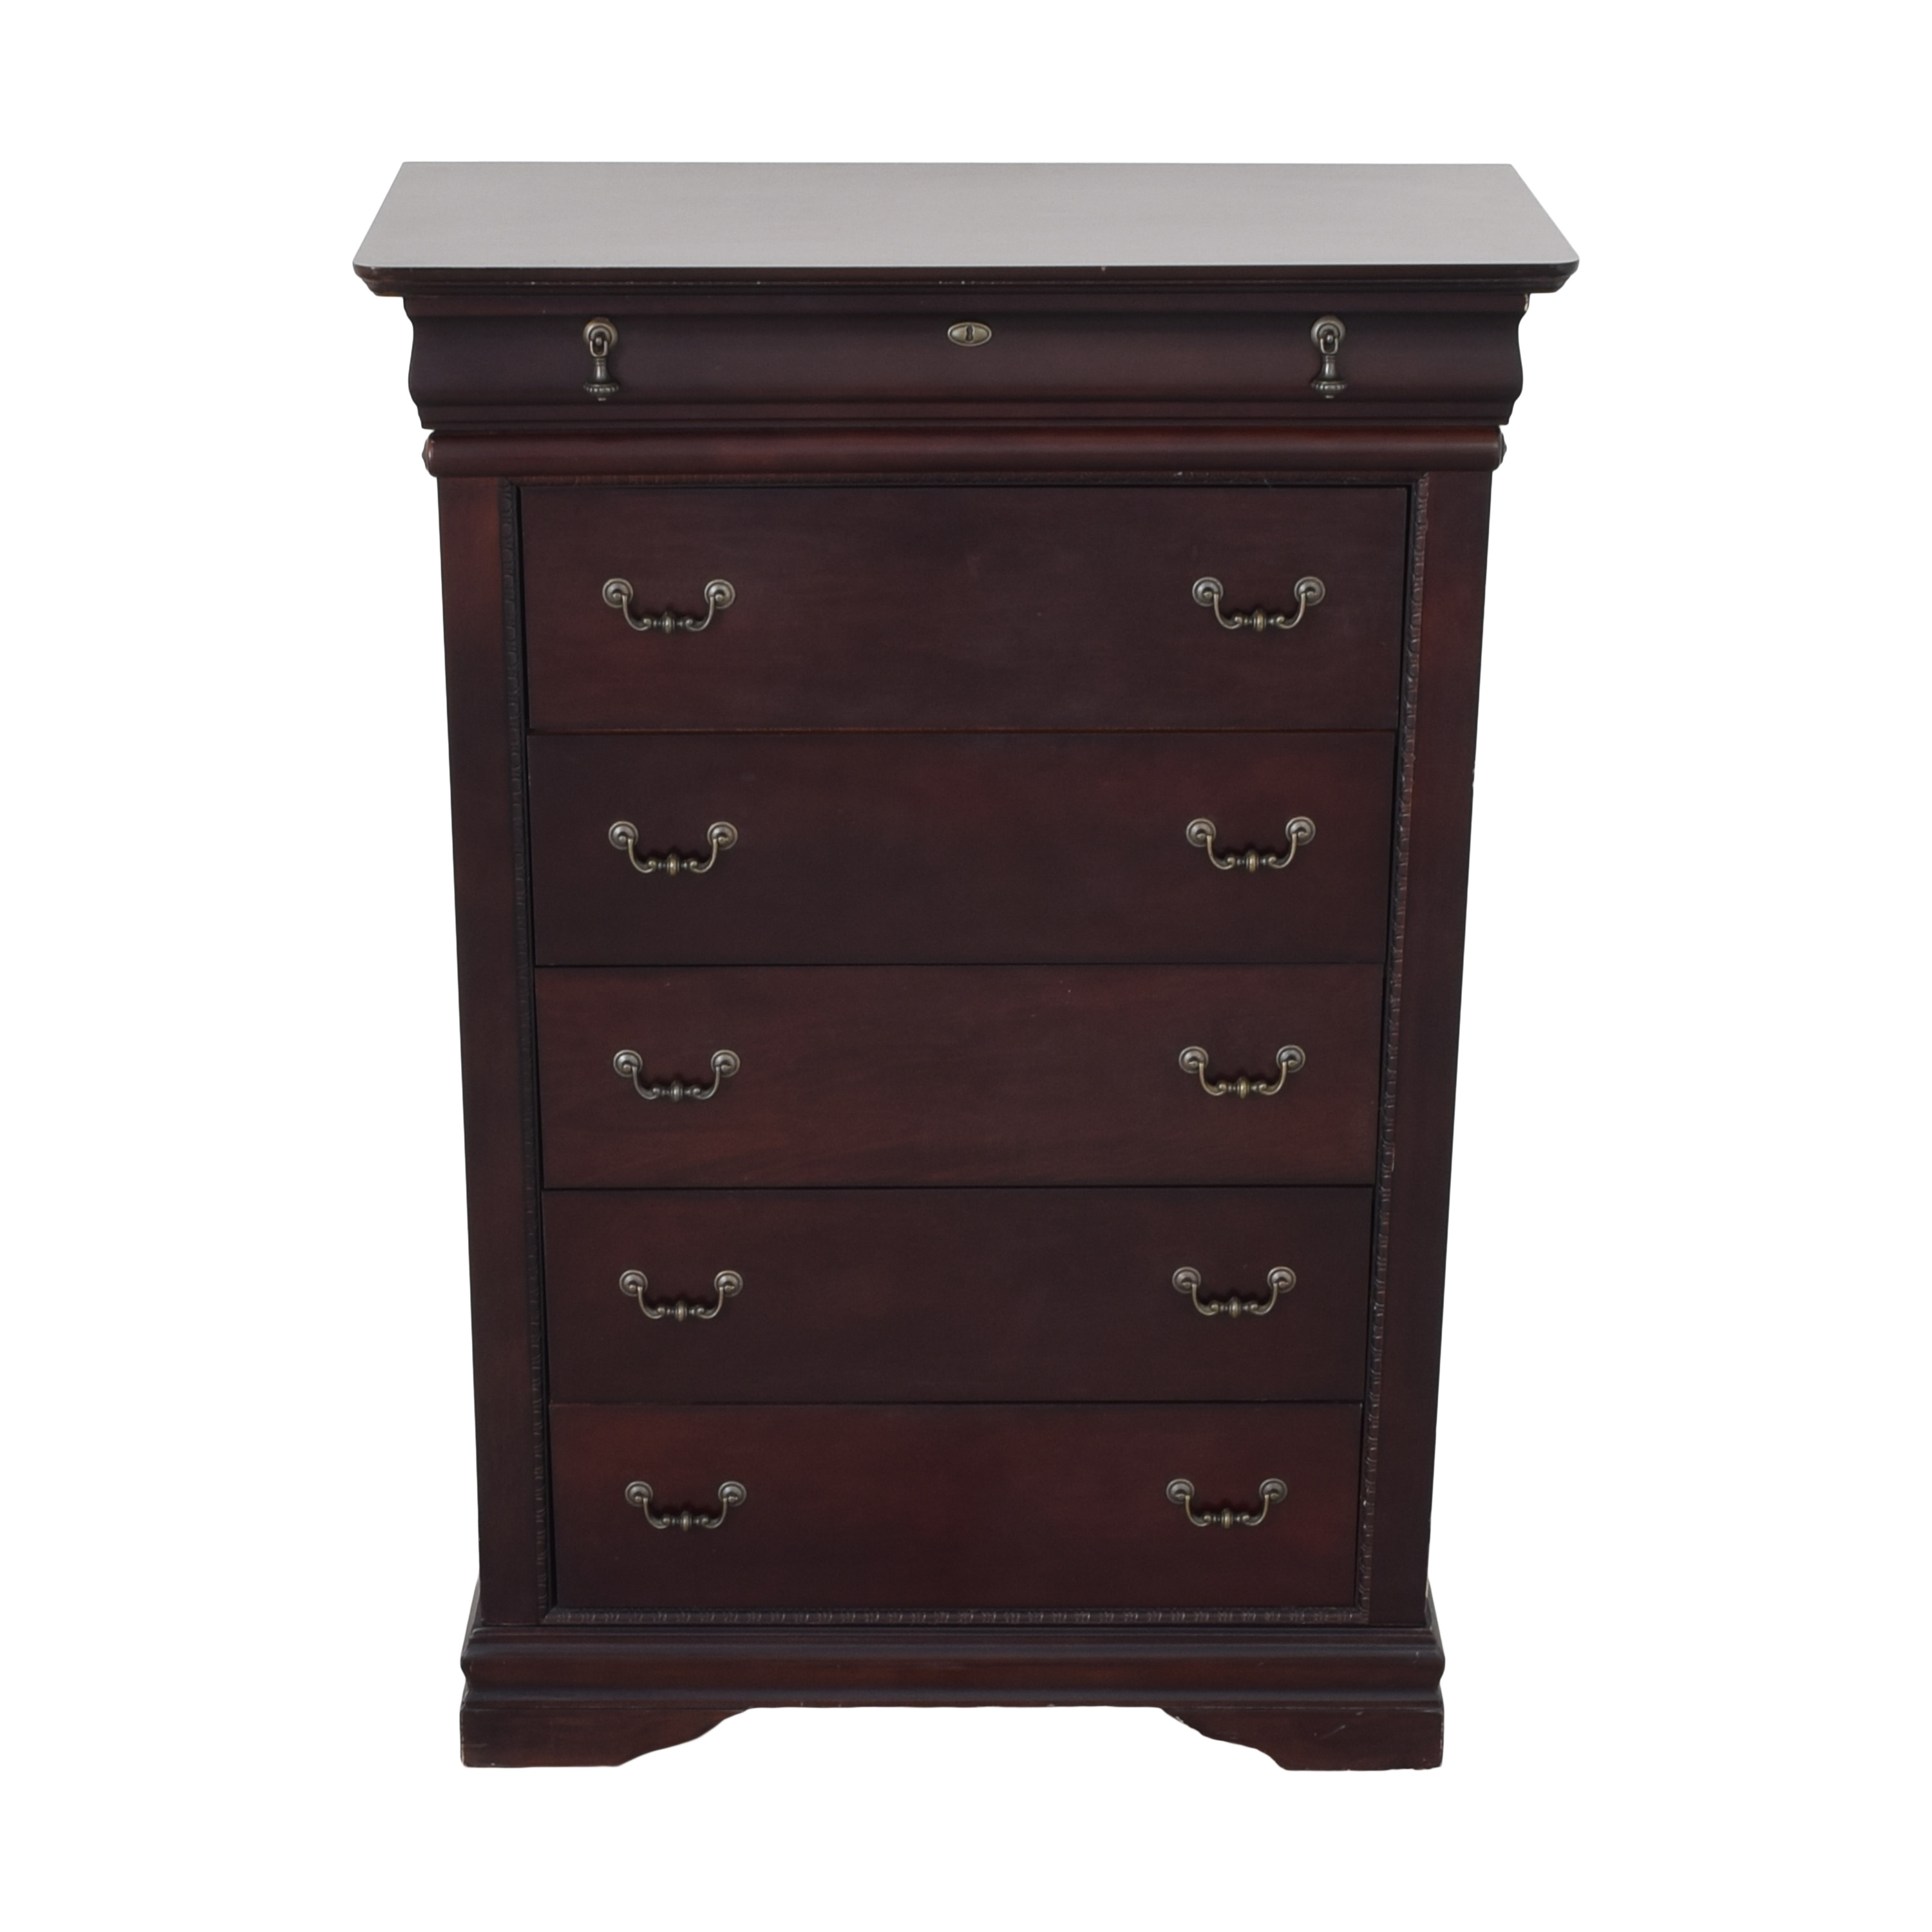 Johnson Furniture JTB Furniture Six Drawer Chest on sale